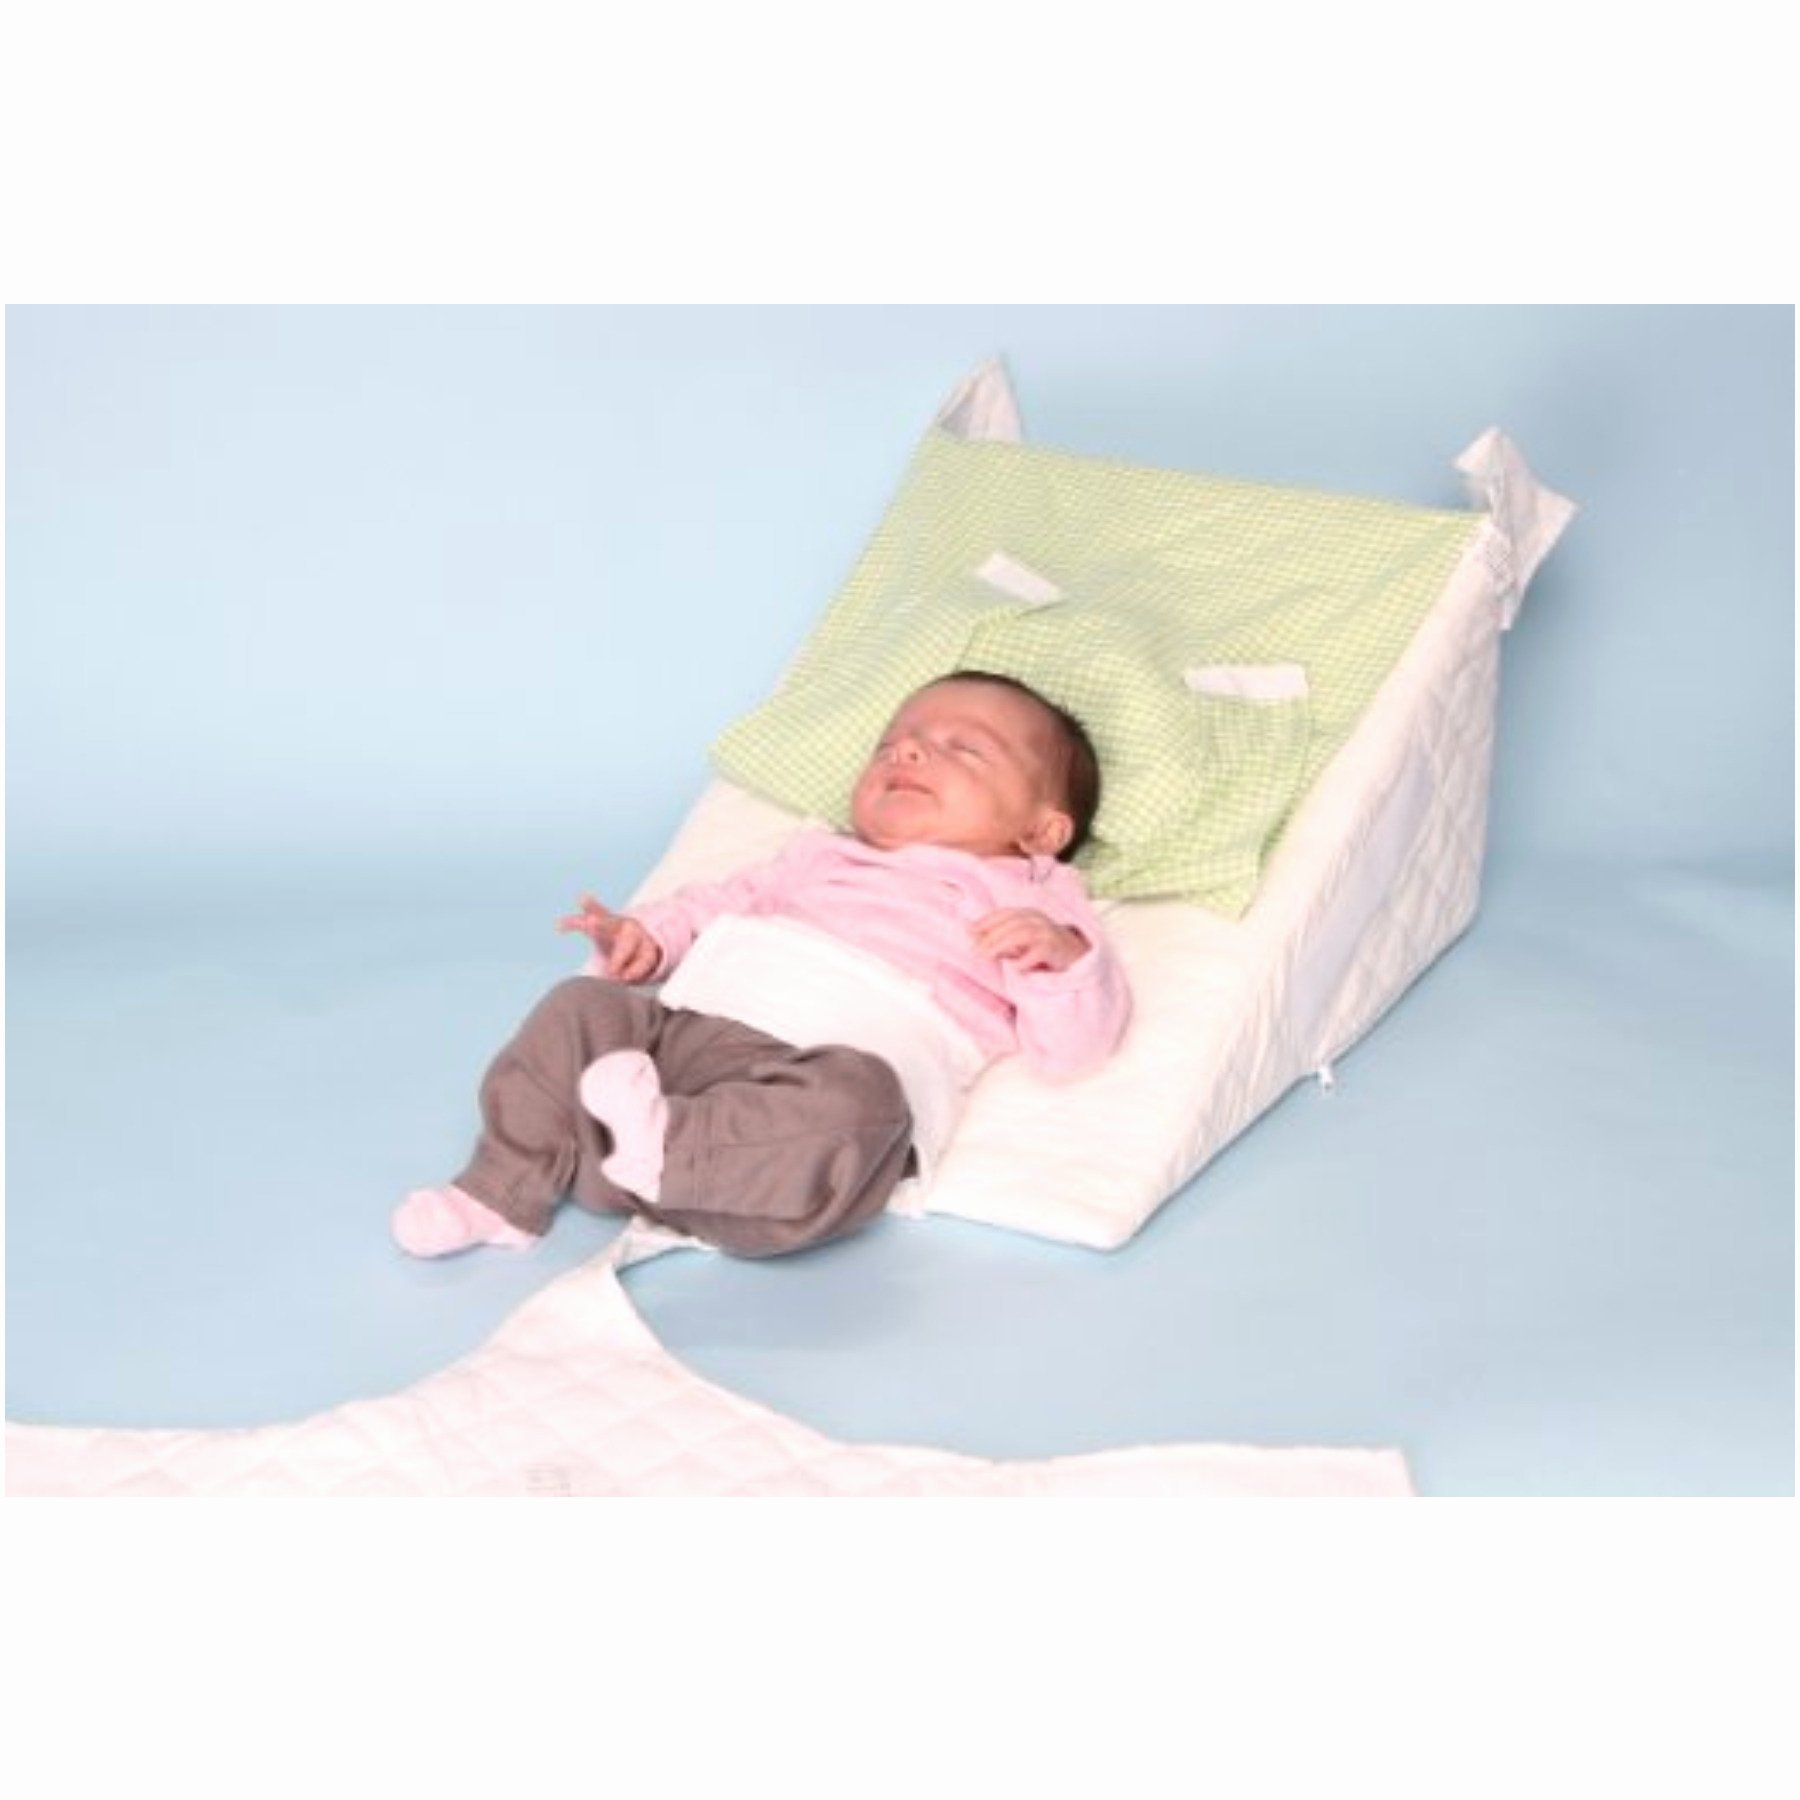 wedge pillow for babies